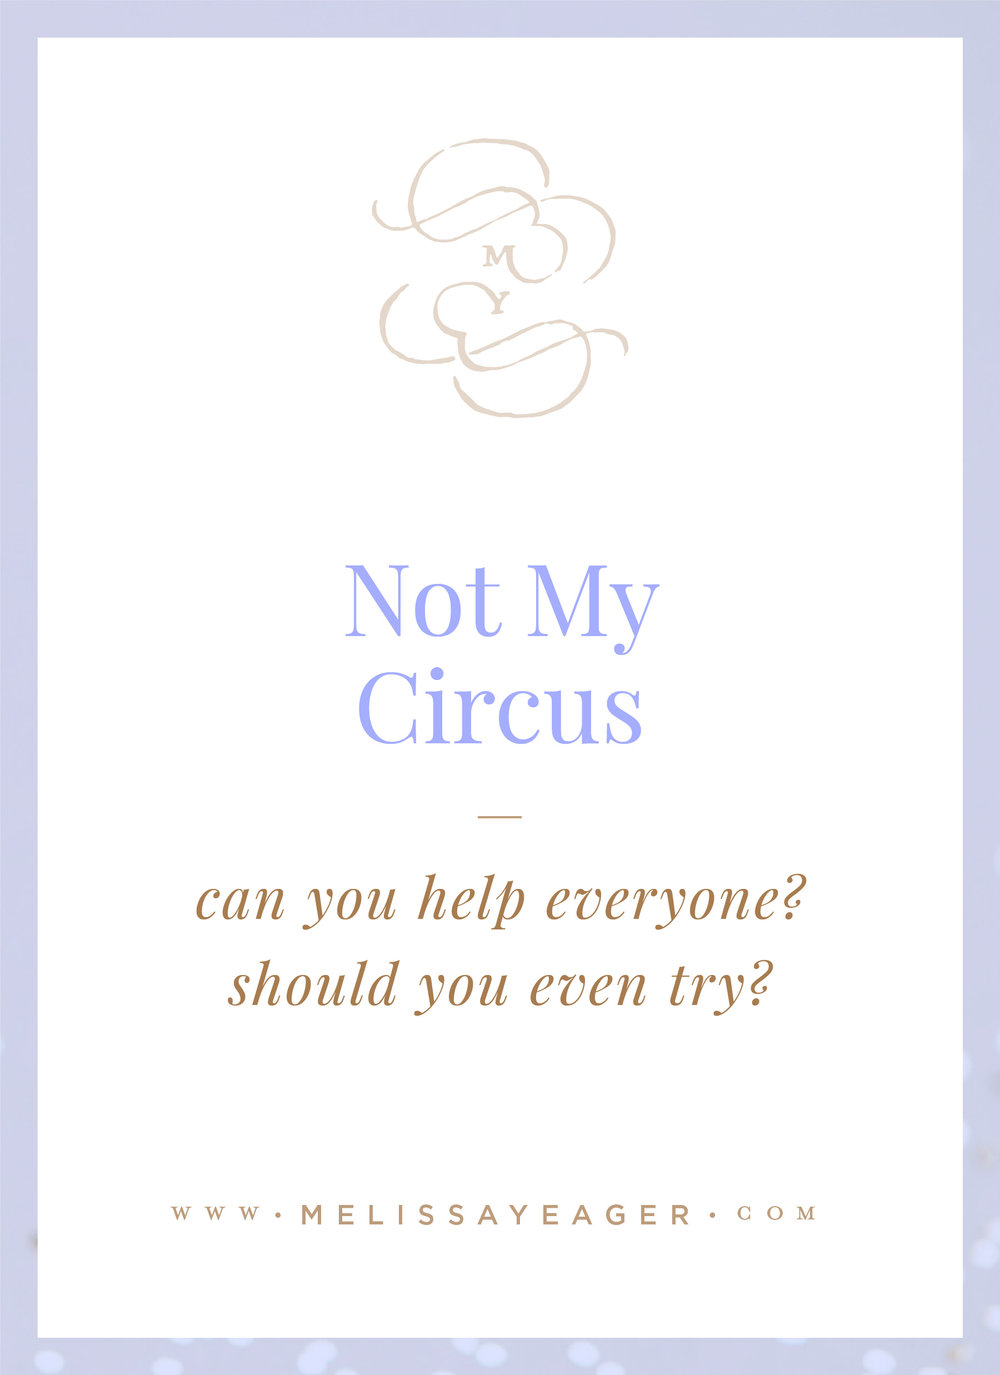 Not My Circus - Melissa Yeager